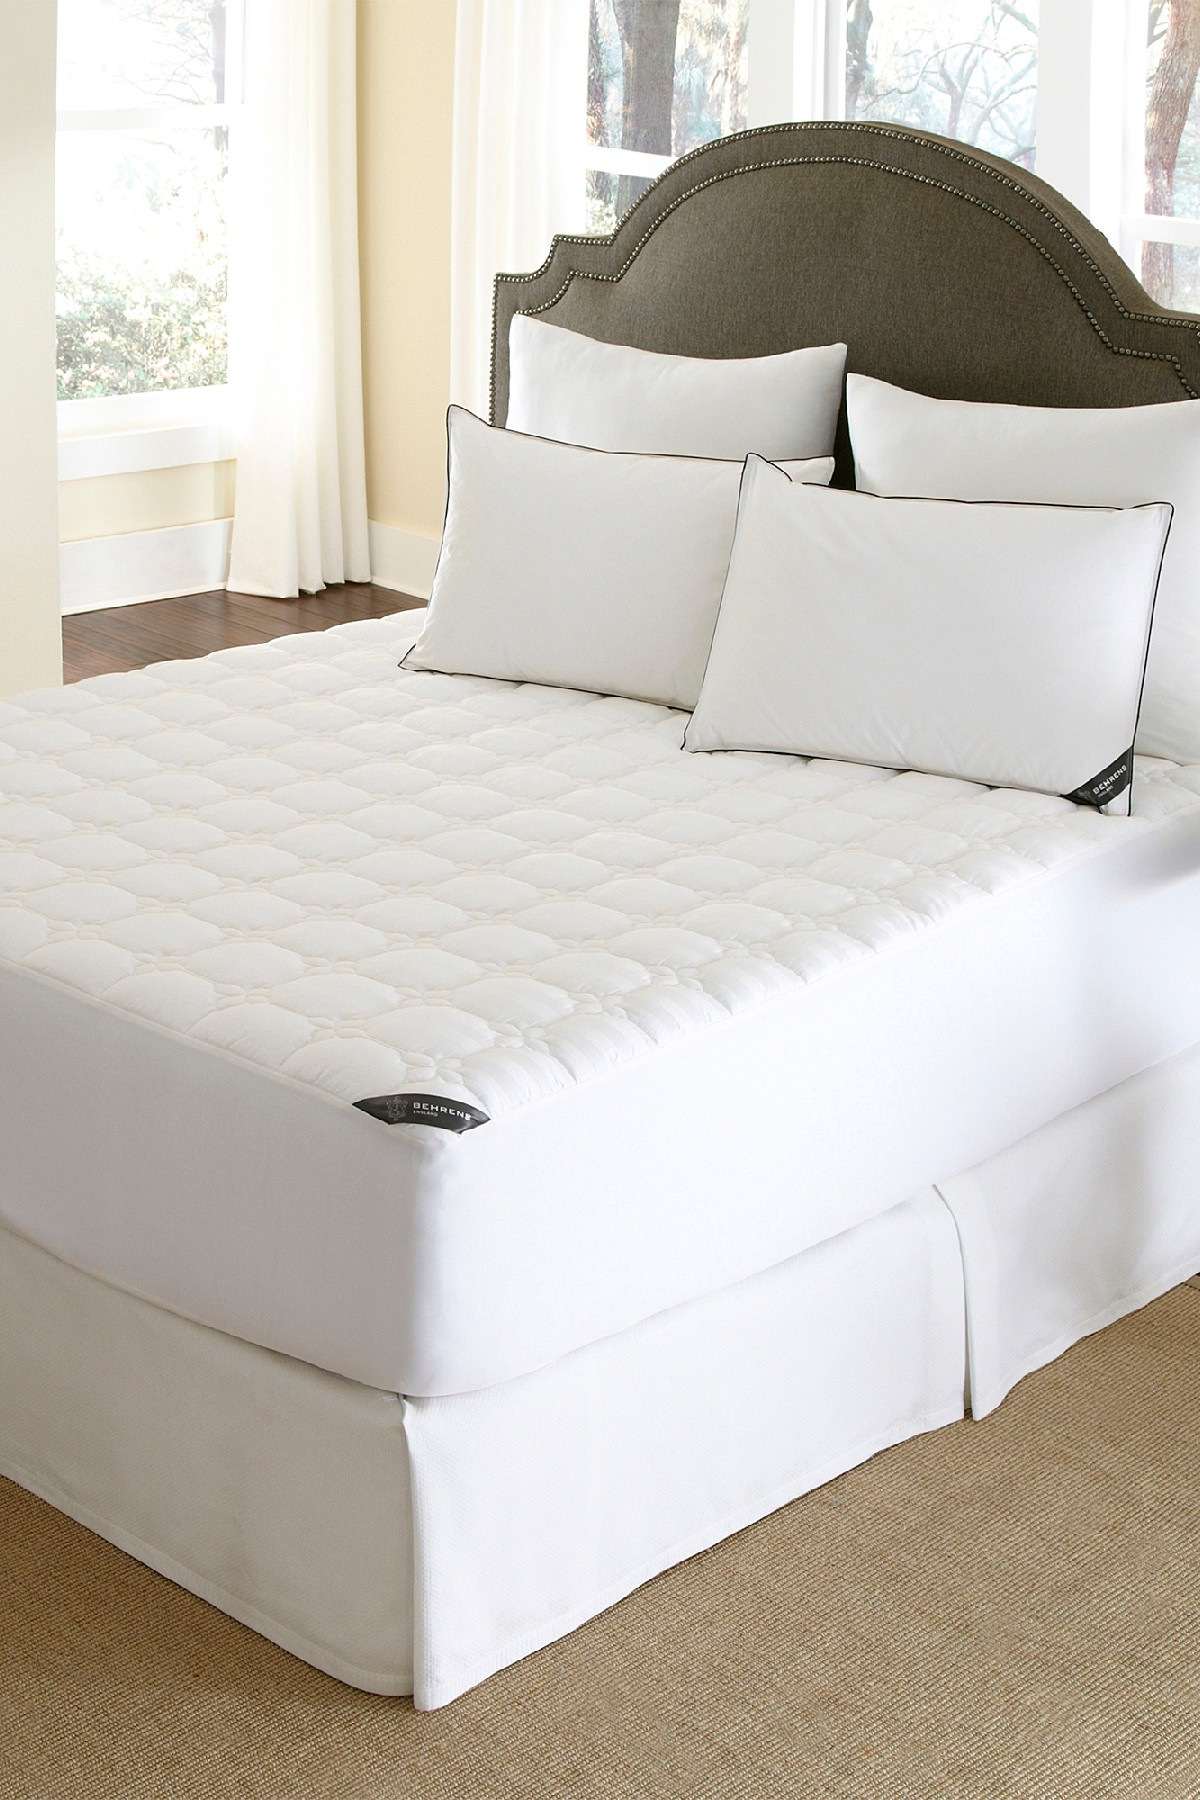 Rio Home England Full Protection Mattress Pad White Mattress Pad Waterproof Mattress Pad Mattress